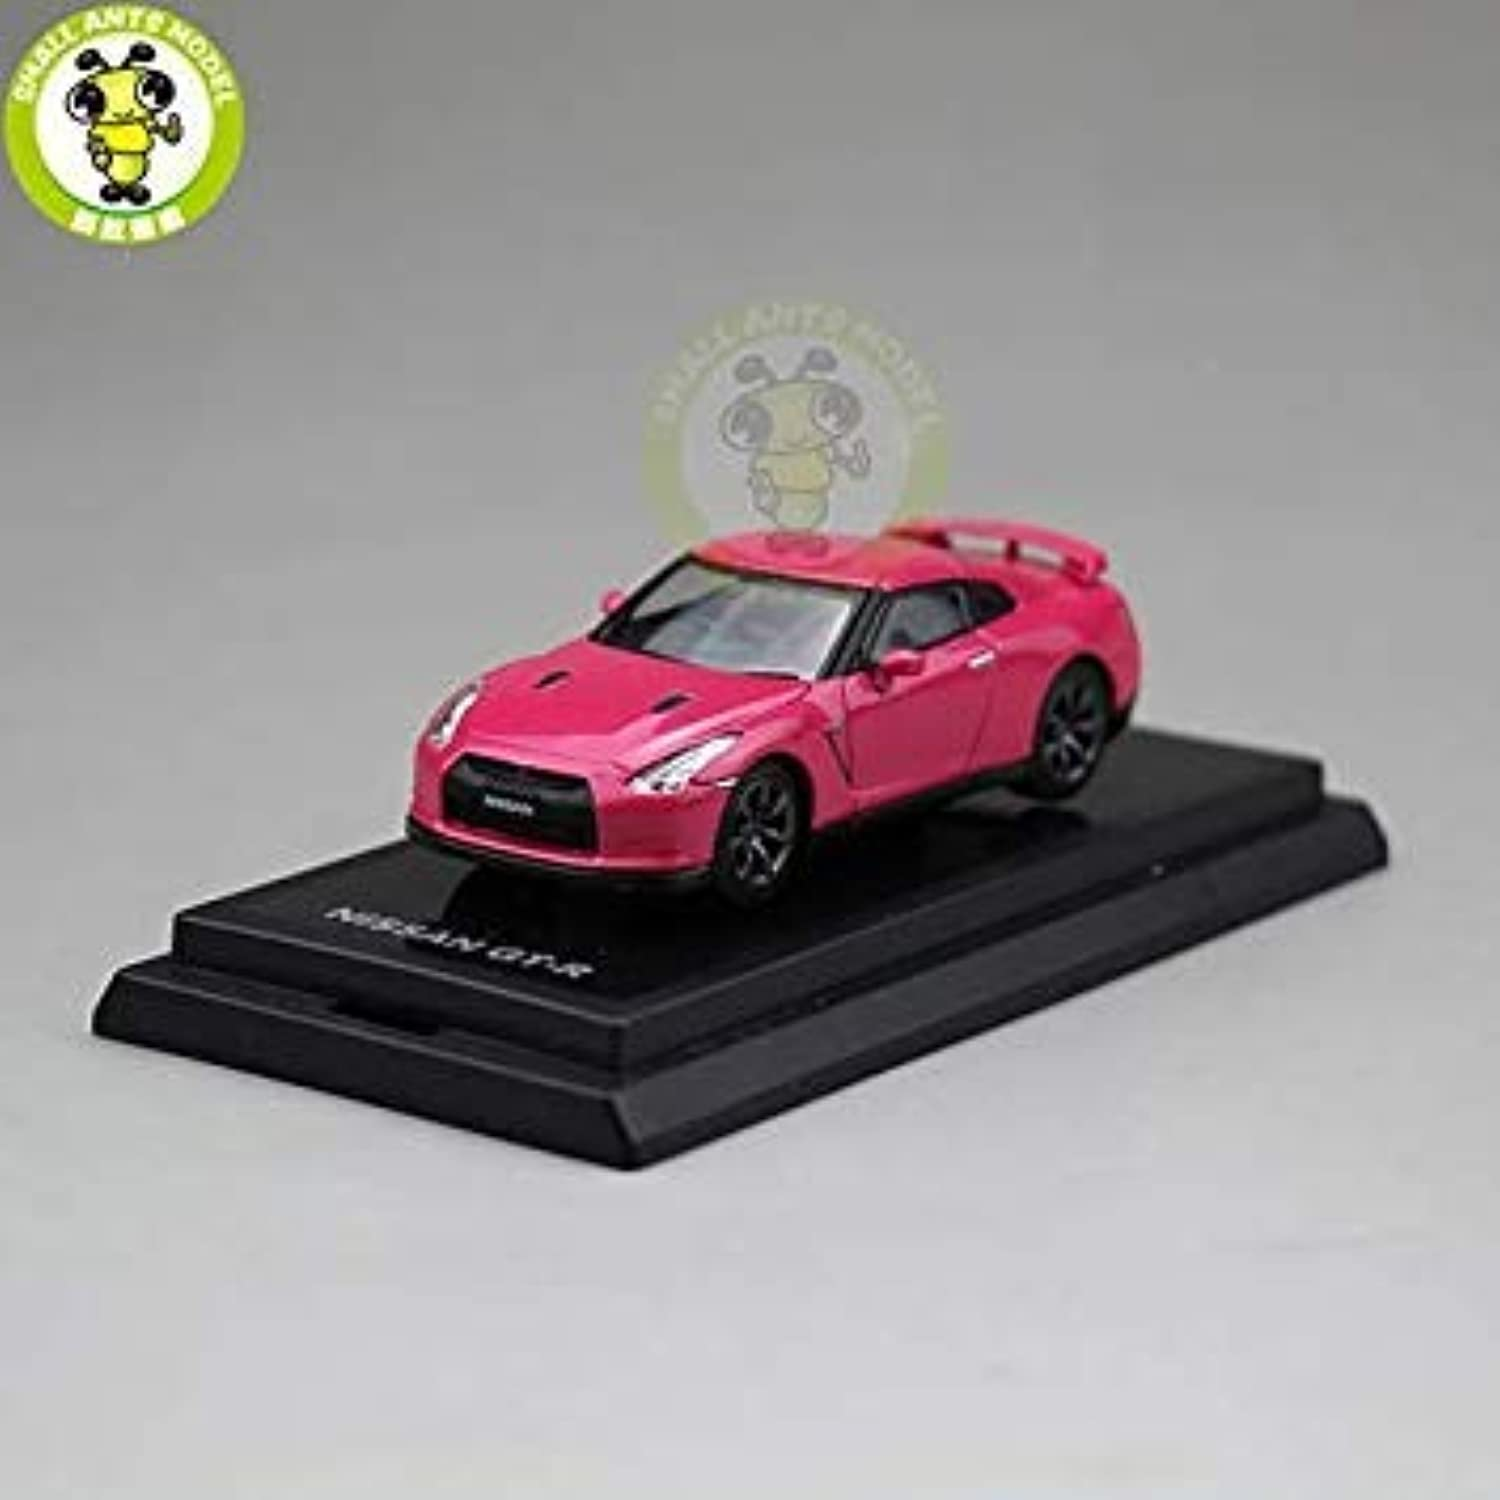 1 64 Nissan GTR GT R R35 Racing Sport Car Diecast Metal Car Model Toy Gift Hobby Collection Pink